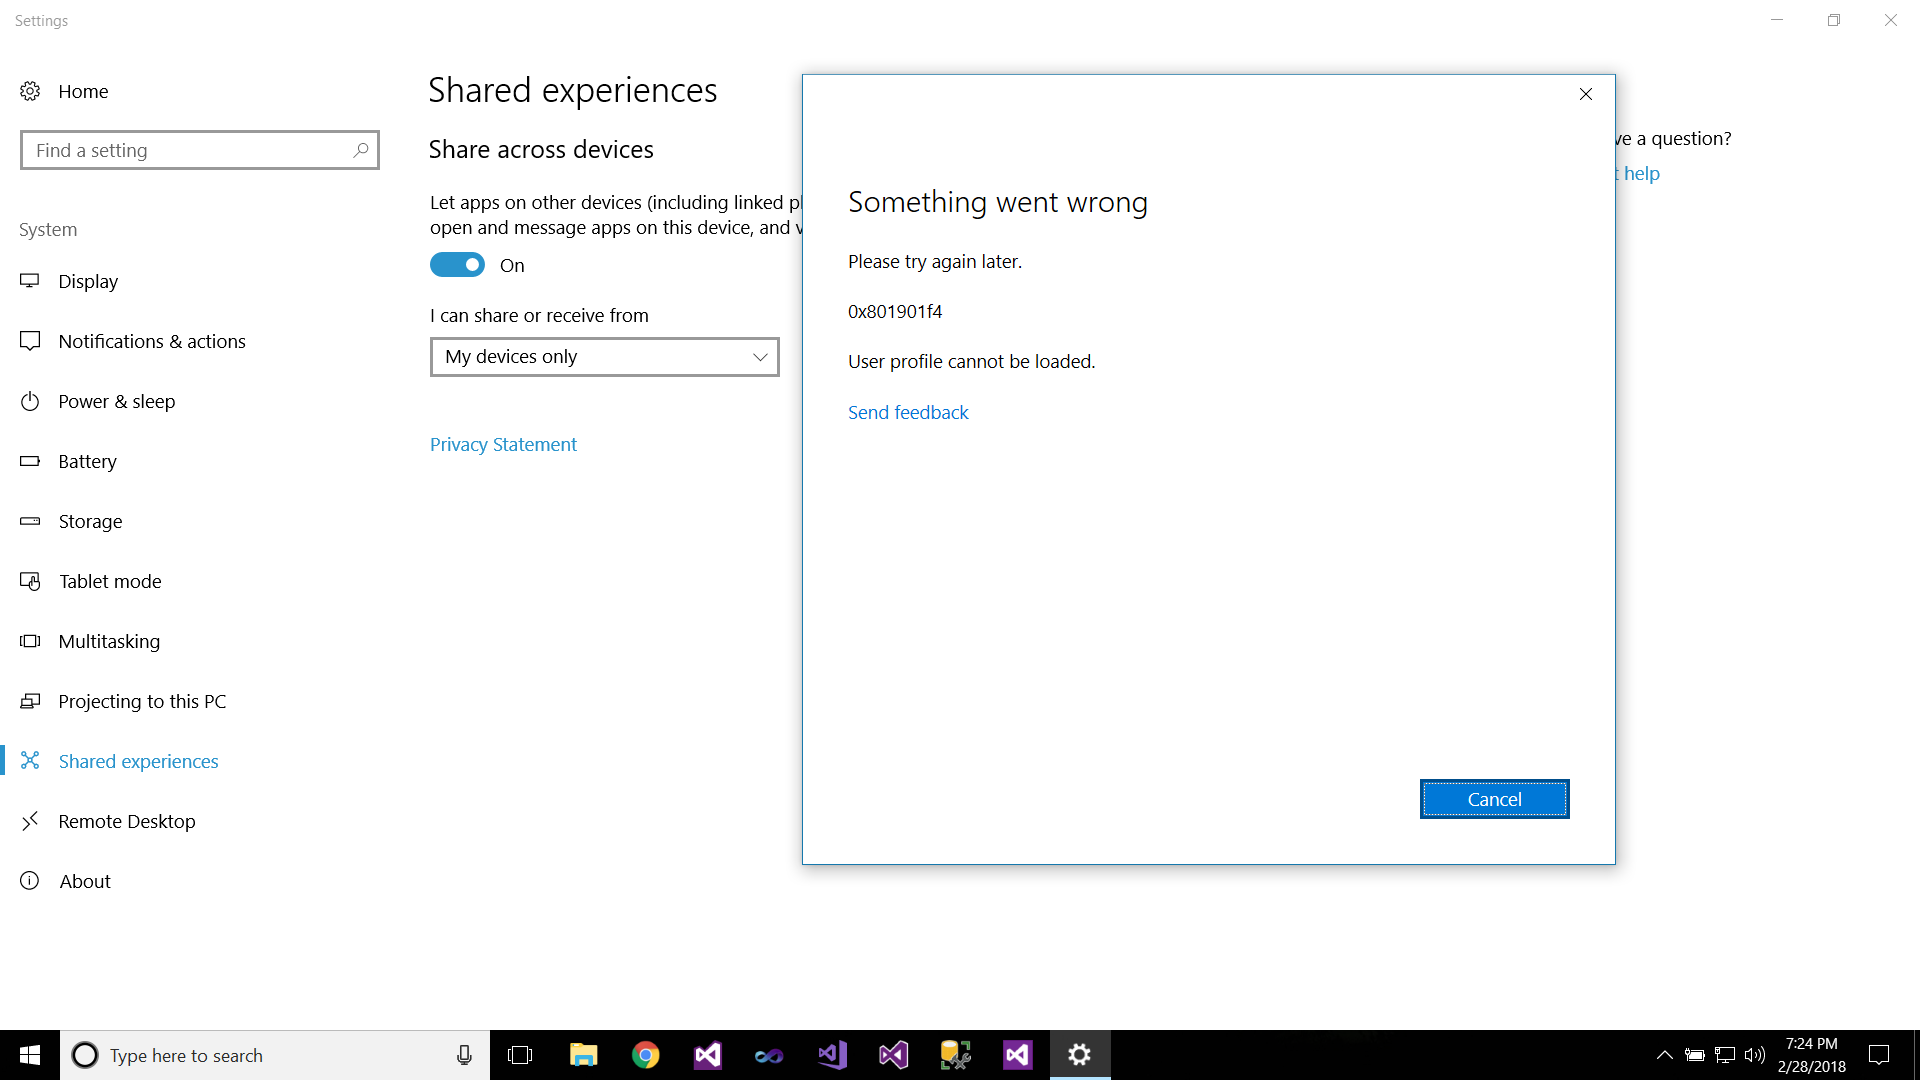 microsoft account problem fix it in shared experiences